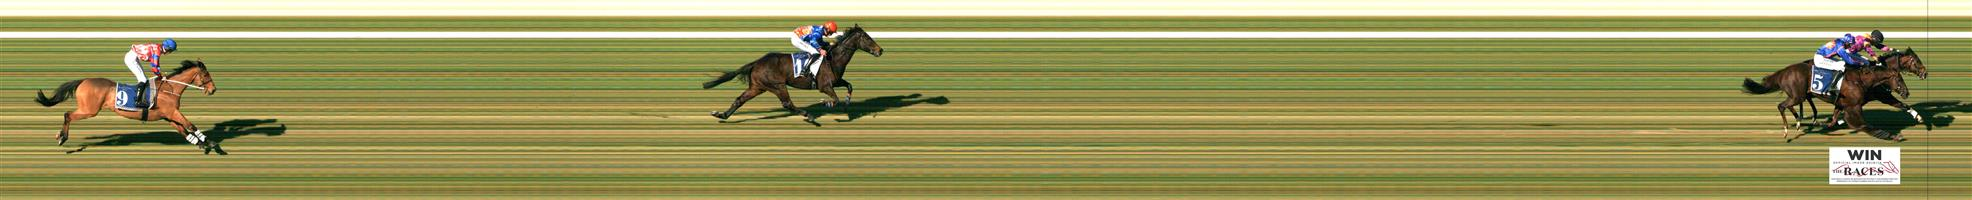 MORPHETTVILLE Race 2 No. 2 Euroman   Result : Unplaced at SP $2.15. Had a tumble mid race after a jump where the jockey showed great horseman ship to stay on however horse was eased out very soon after that. Outcome -1.50 Units.  MORPHETTVILLE Race 2 No. 5 Andrea Mantegna   Result : 2nd at SP $5.00. Settled midfield though made its move forward with about 800m to go. At the turn was behind the leader and took the lead soon after, but leader kicked back and in a close battle all the way up the straight, Andrea Mantegna finished on the wrong side of the ledger. Outcome -1.25 Units.